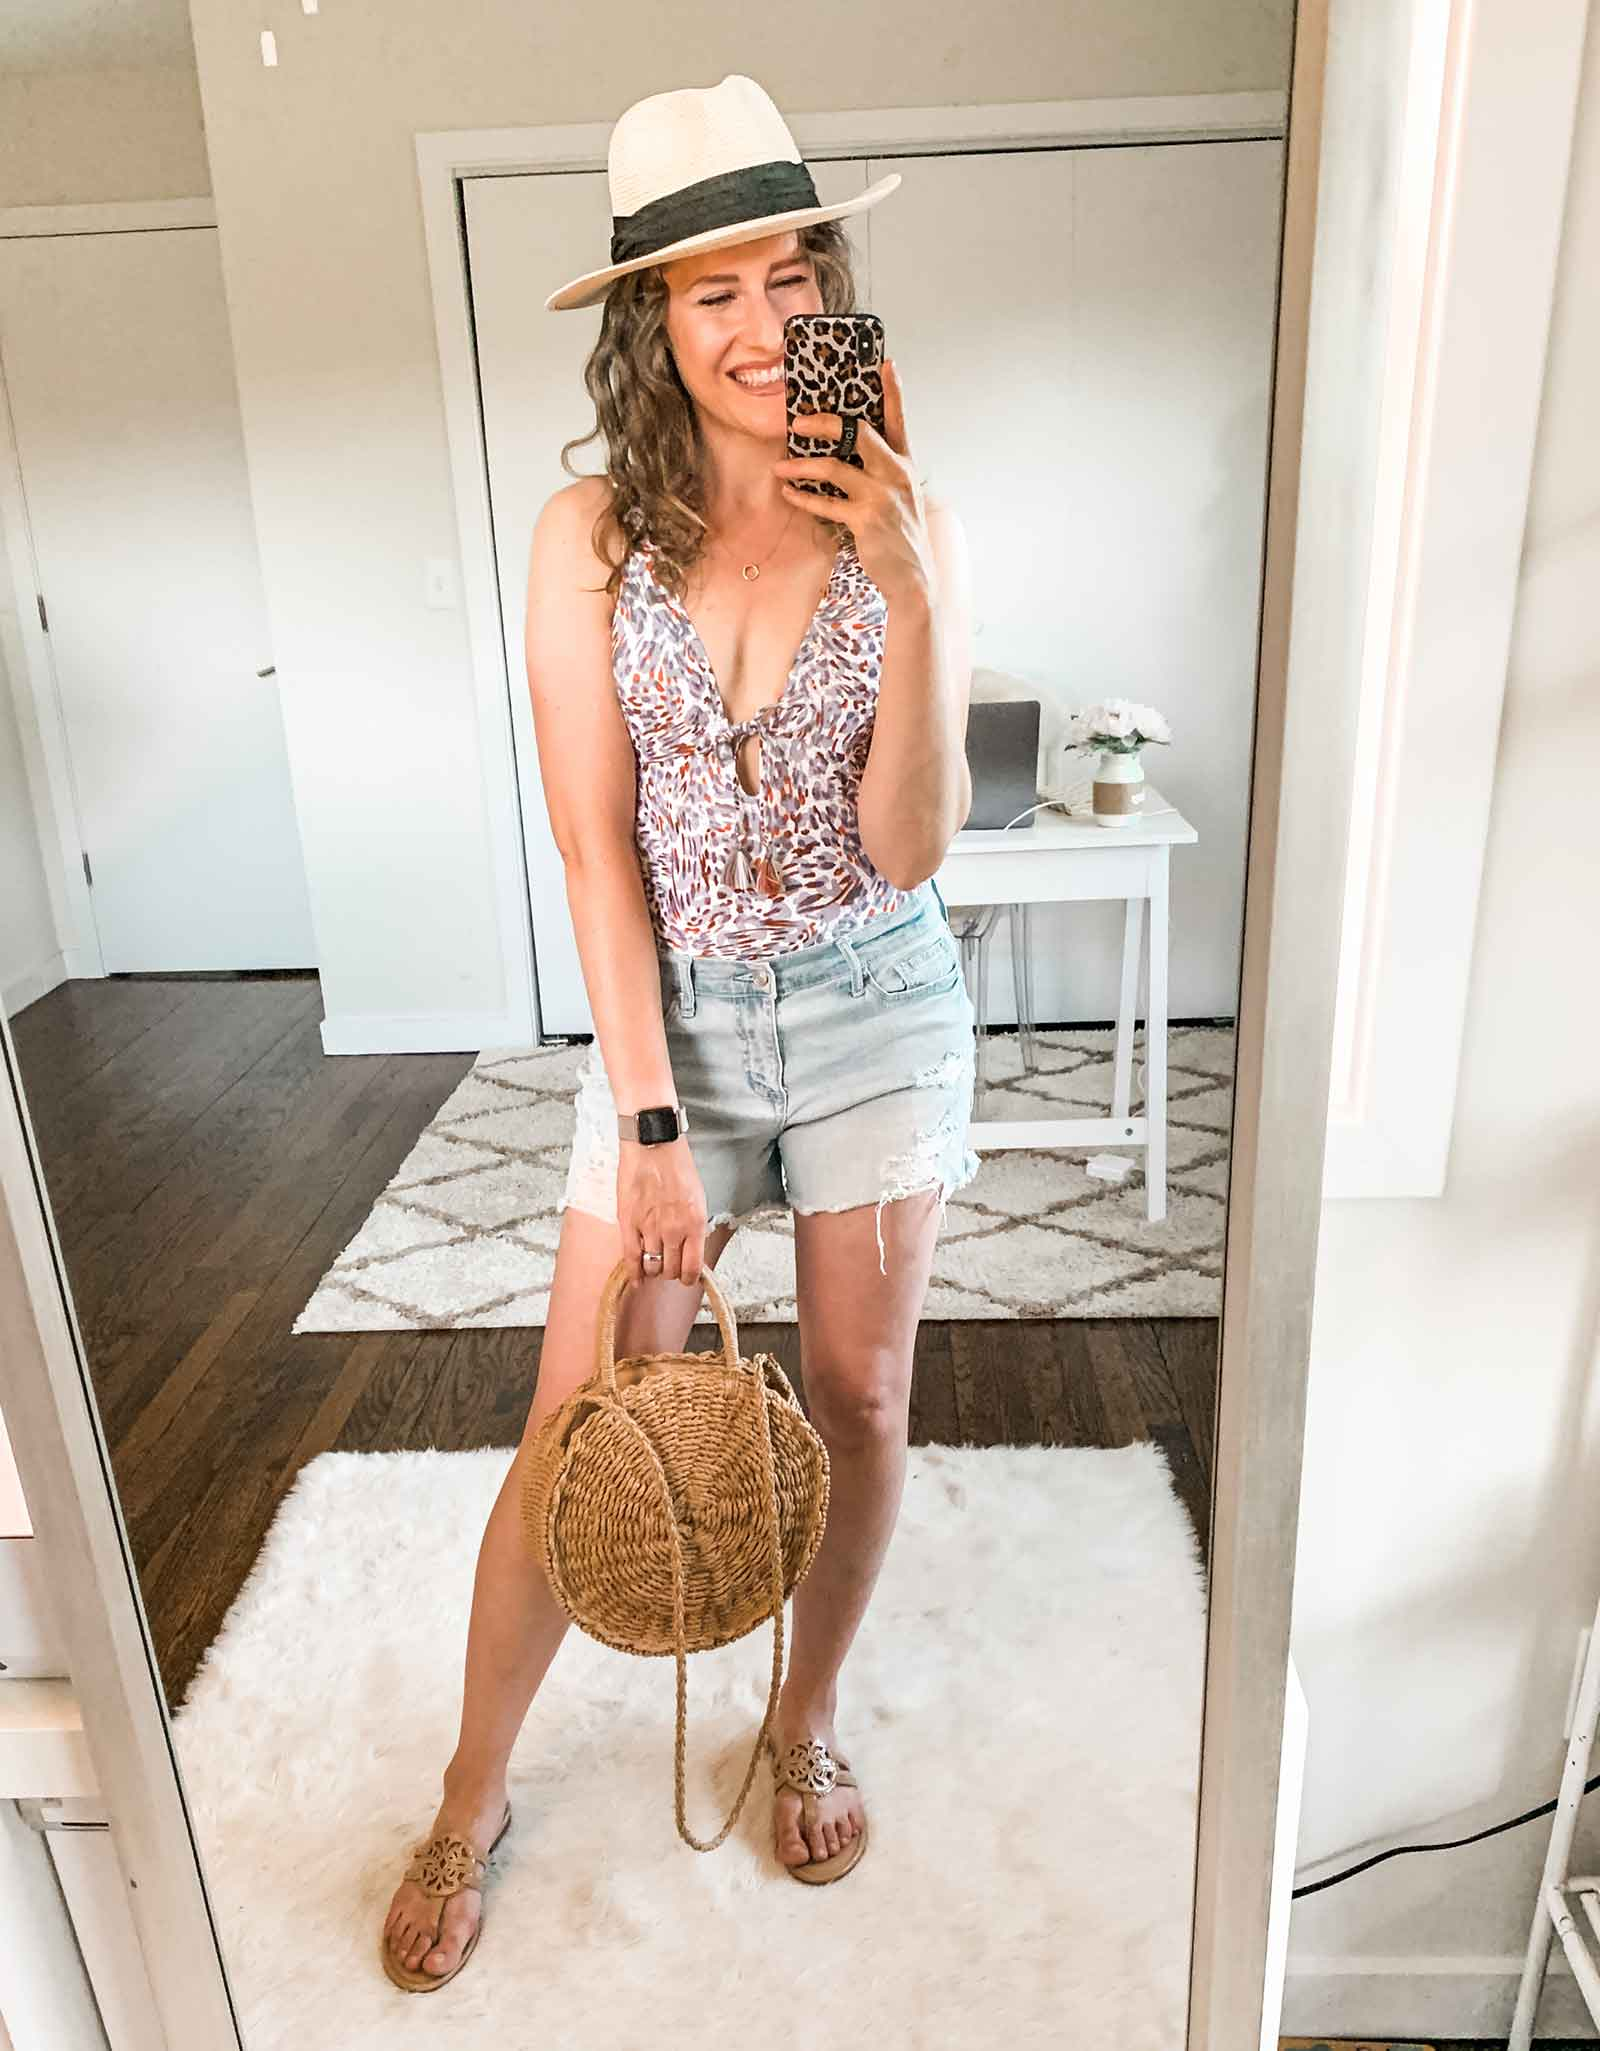 One piece bathing suits swimsuits under $25 at Walmart | The Budget Babe affordable style blog